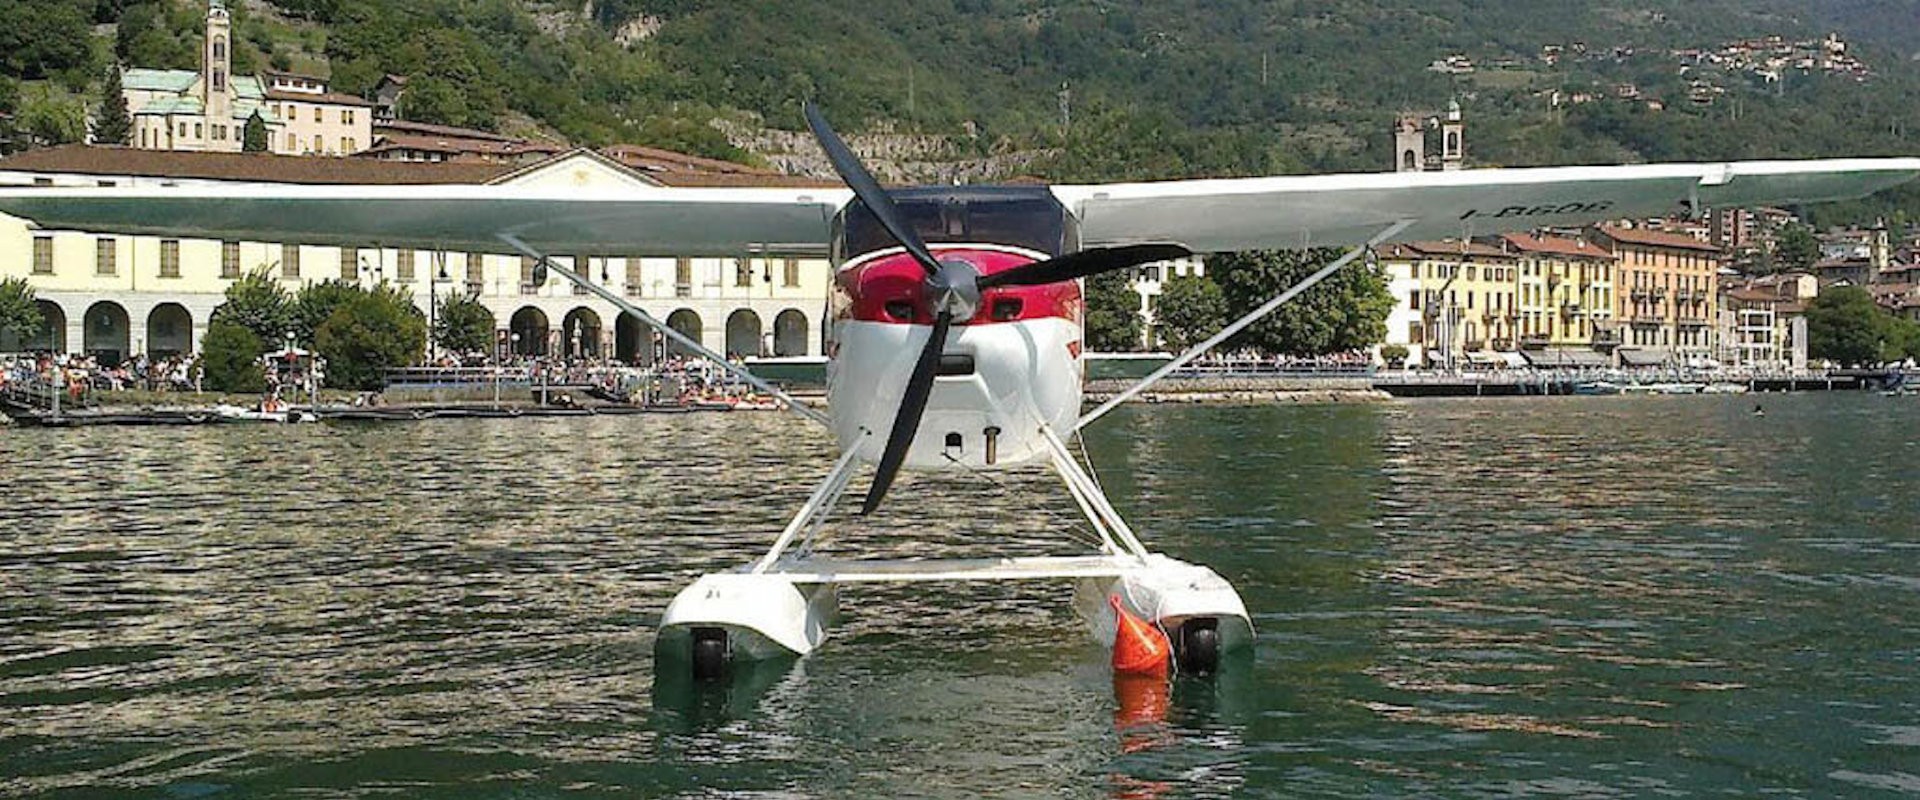 Amphibious aircraft in Italy